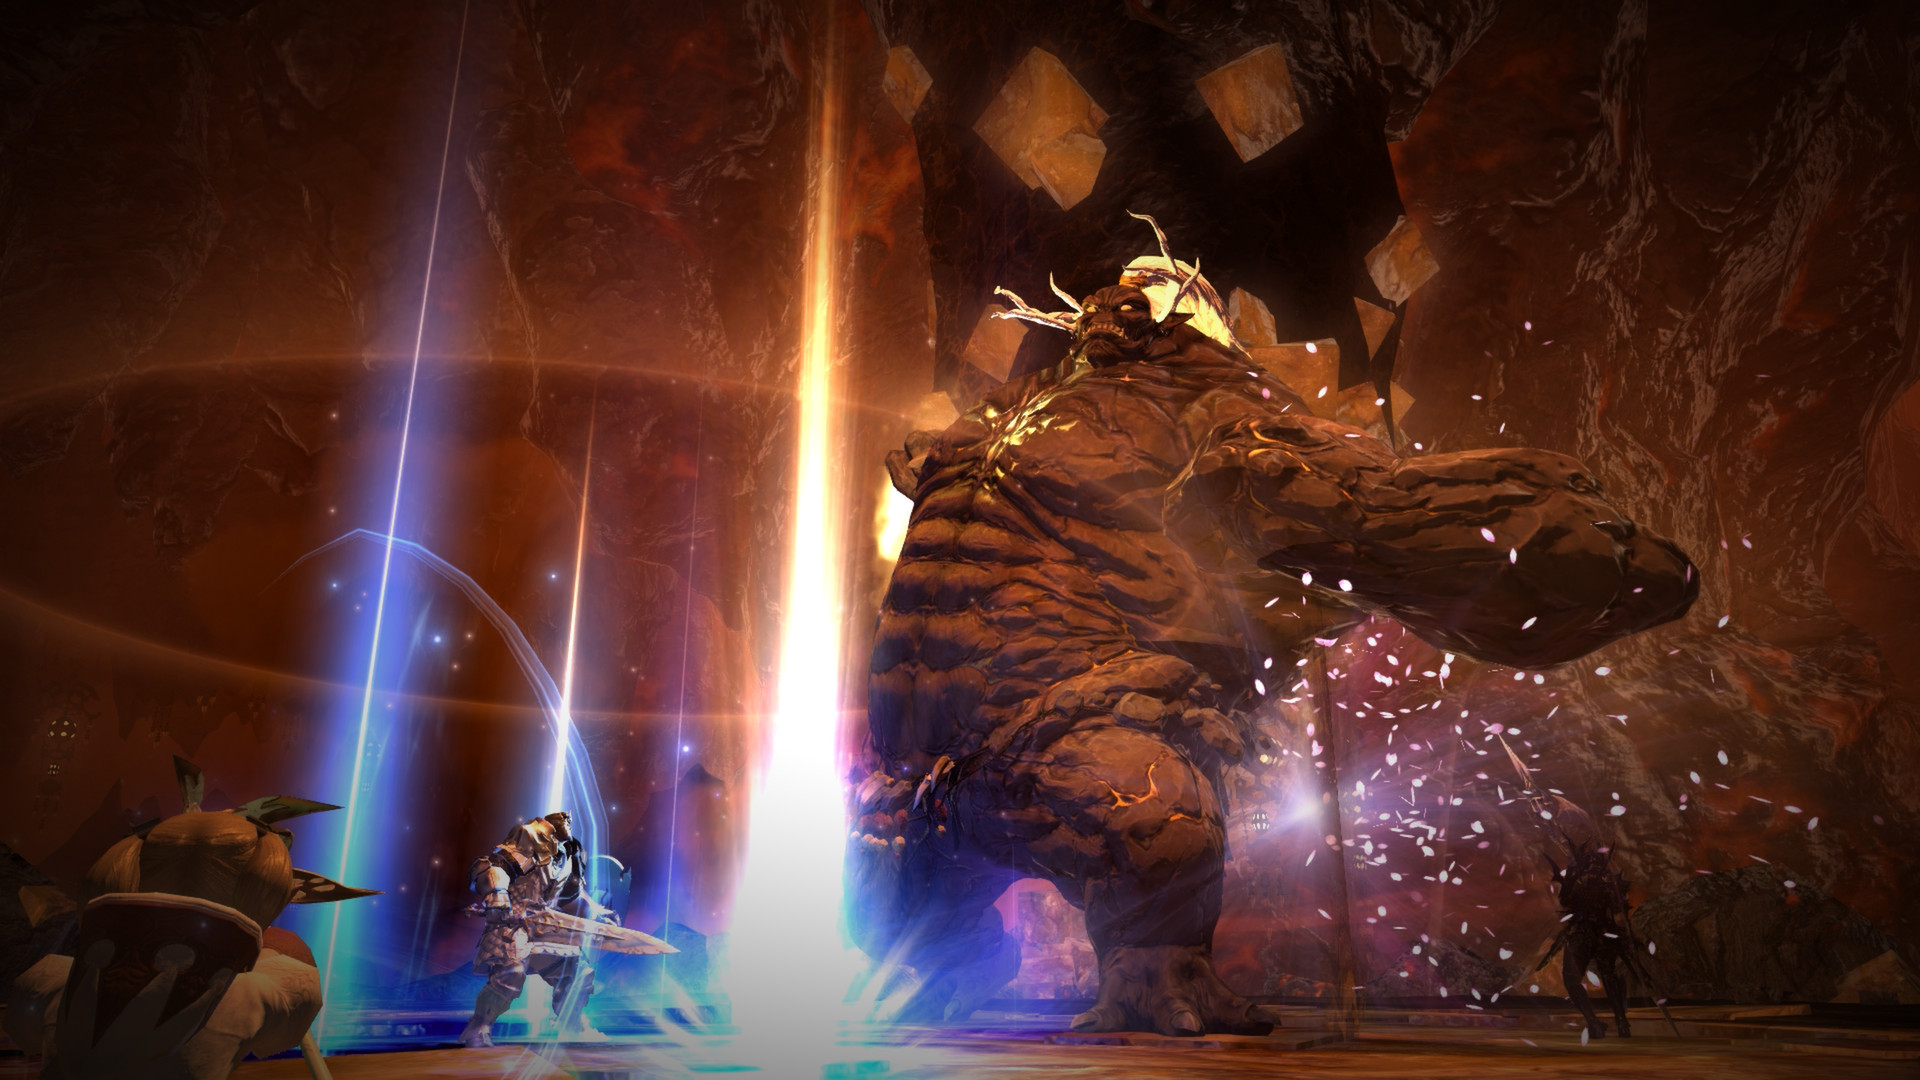 Final Fantasy XIV closes one-third of North American servers to new characters